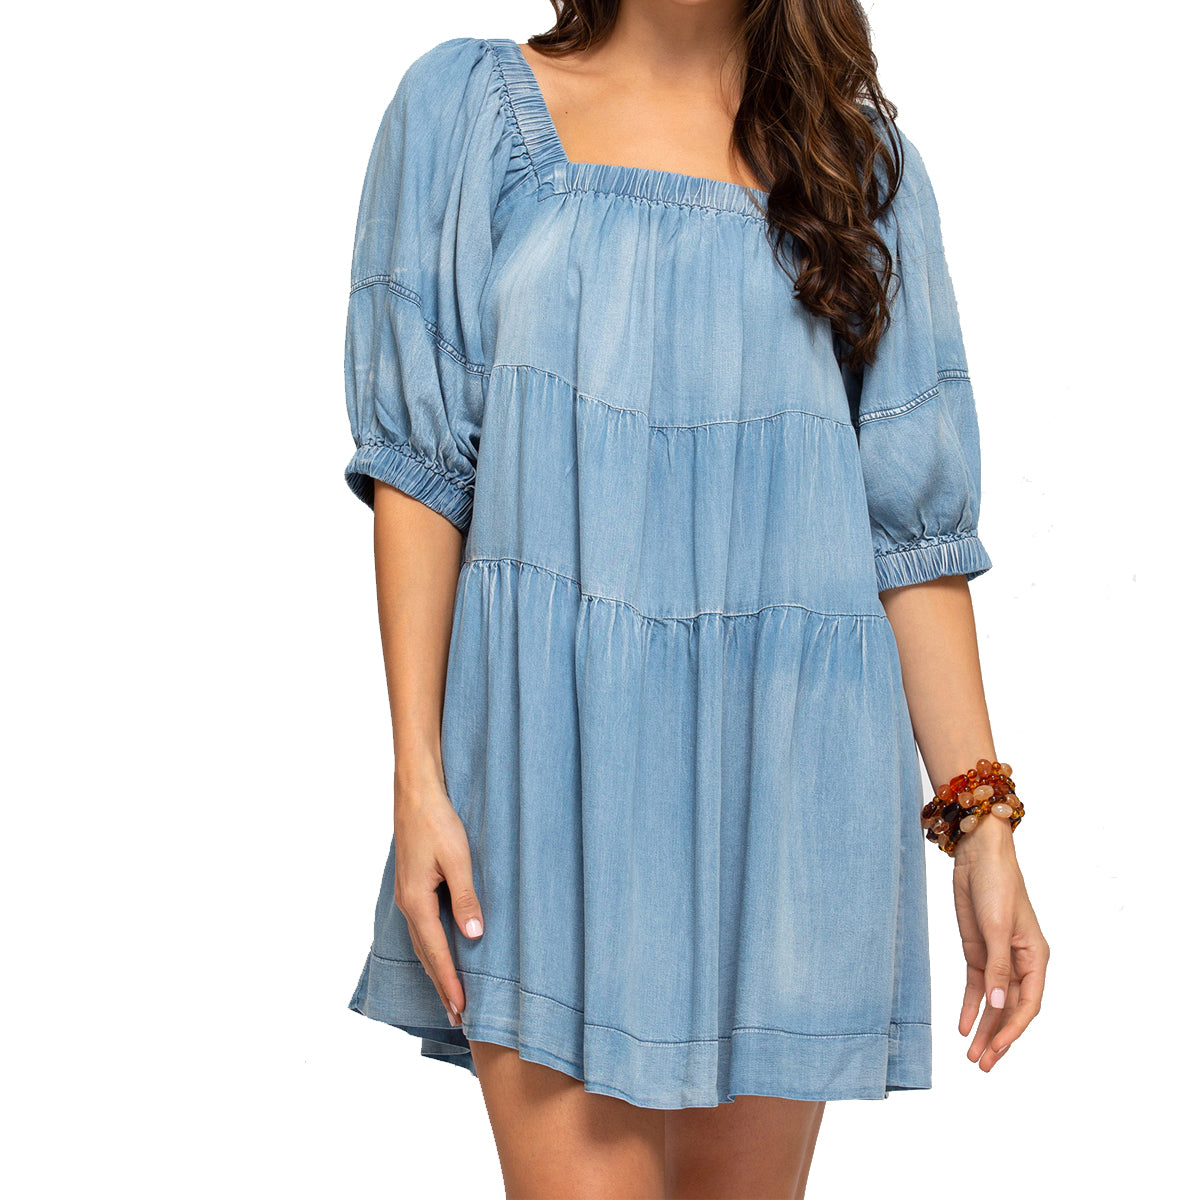 She + Sky Women's Half Sleeve Washed Denim Dress - Light Blue